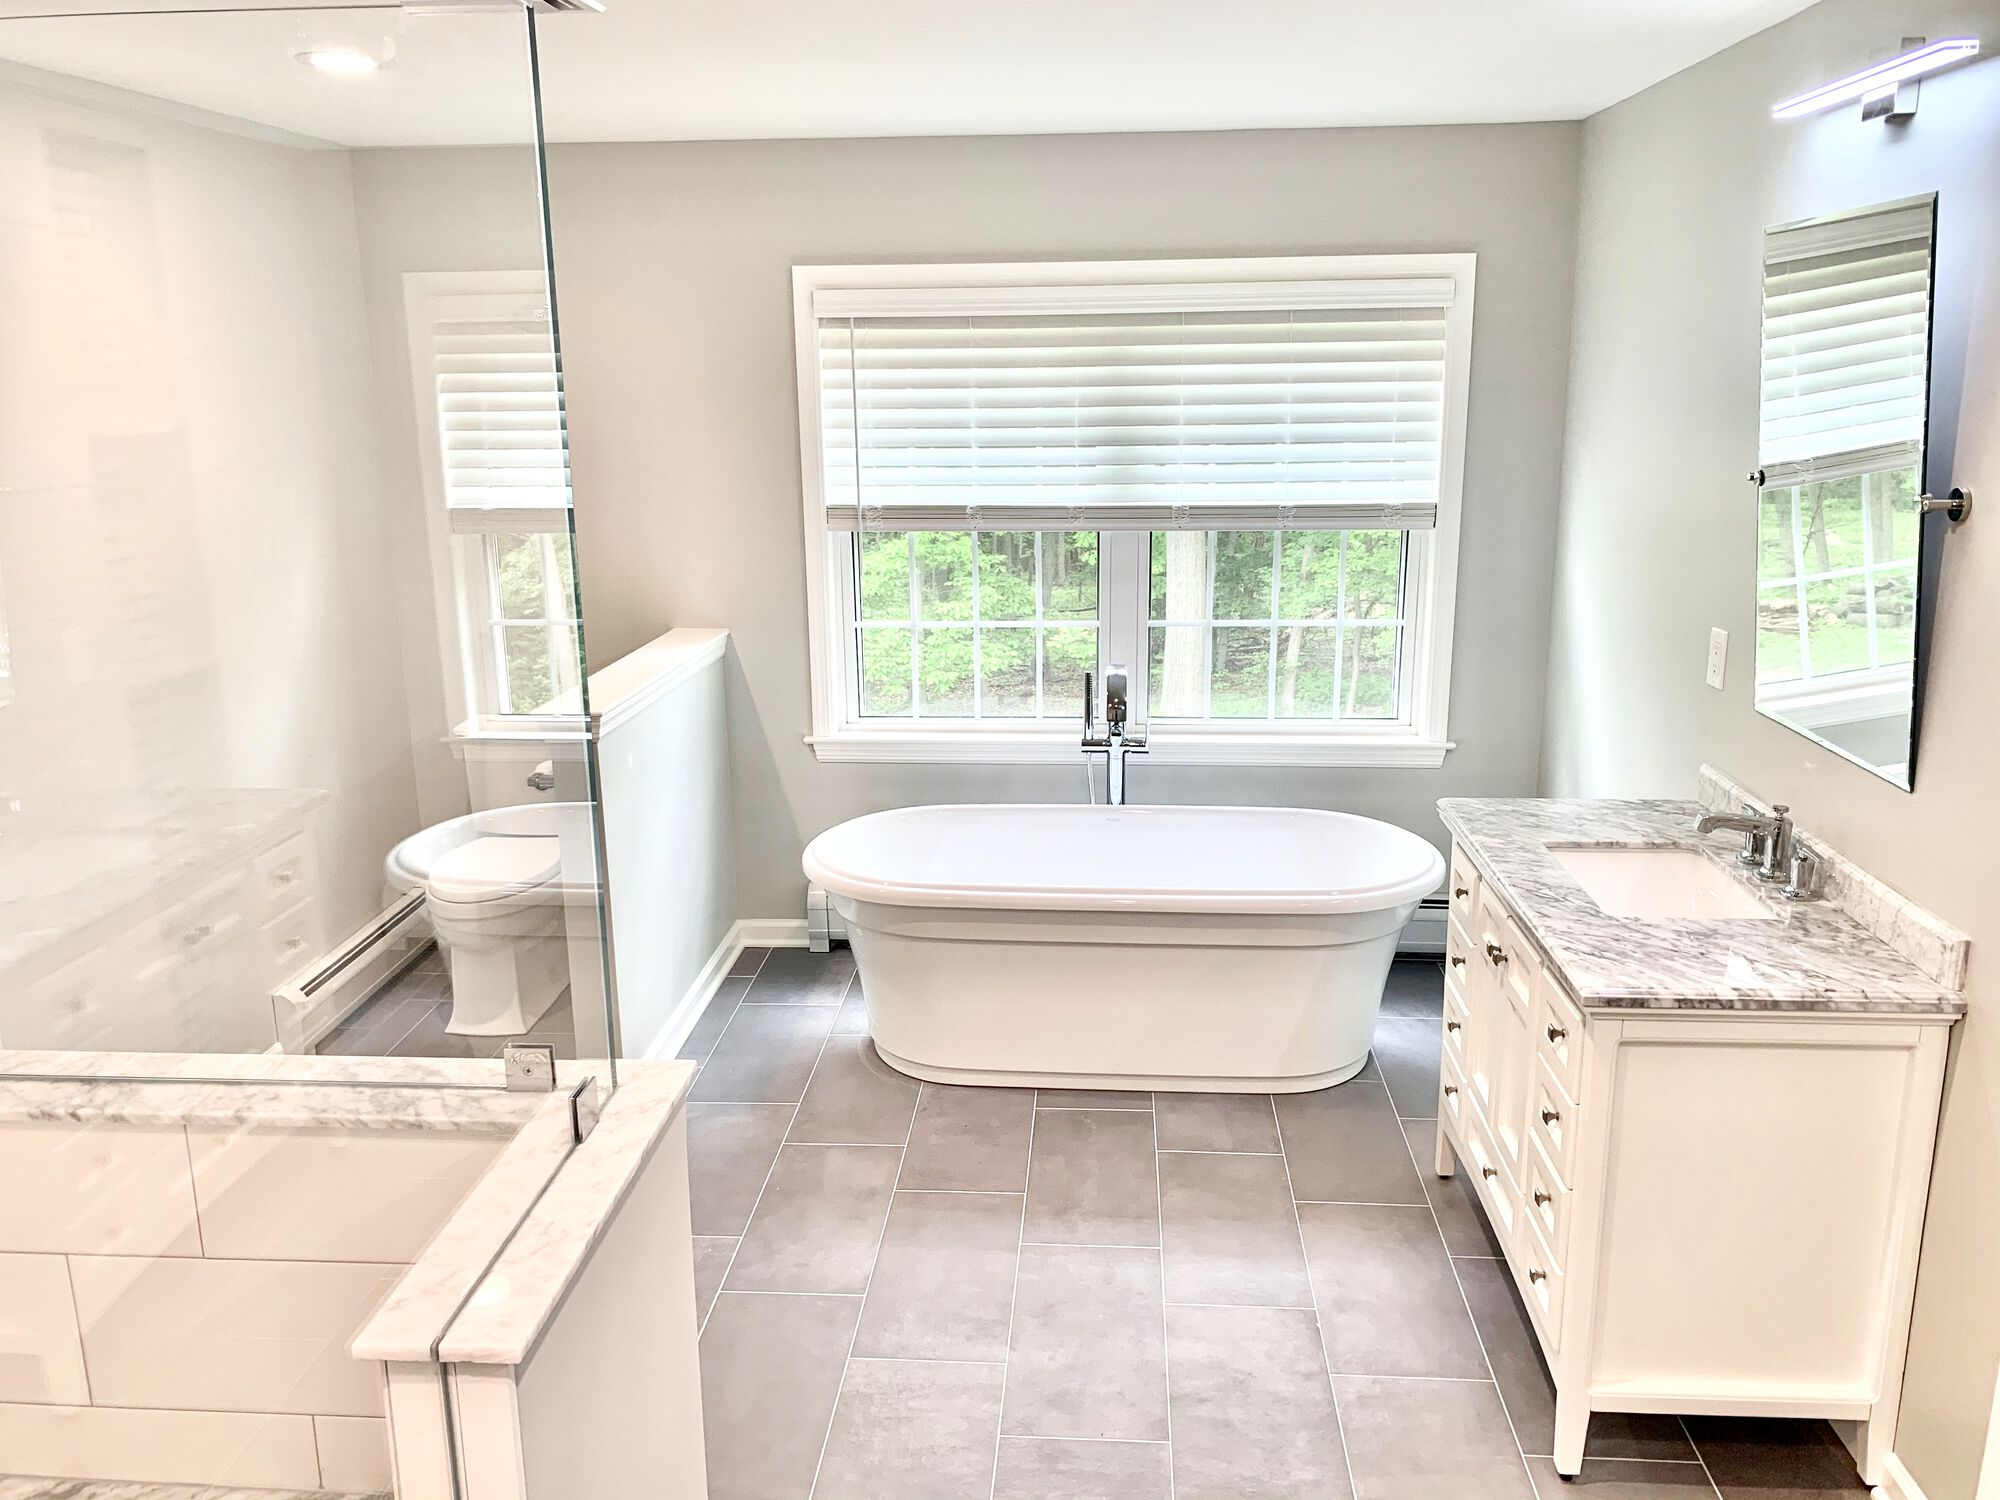 Master Bath in North Jersey with Kohler Fixtures, Ceramic Tile Flooring, Wood Cabinetry with Undermount Sink